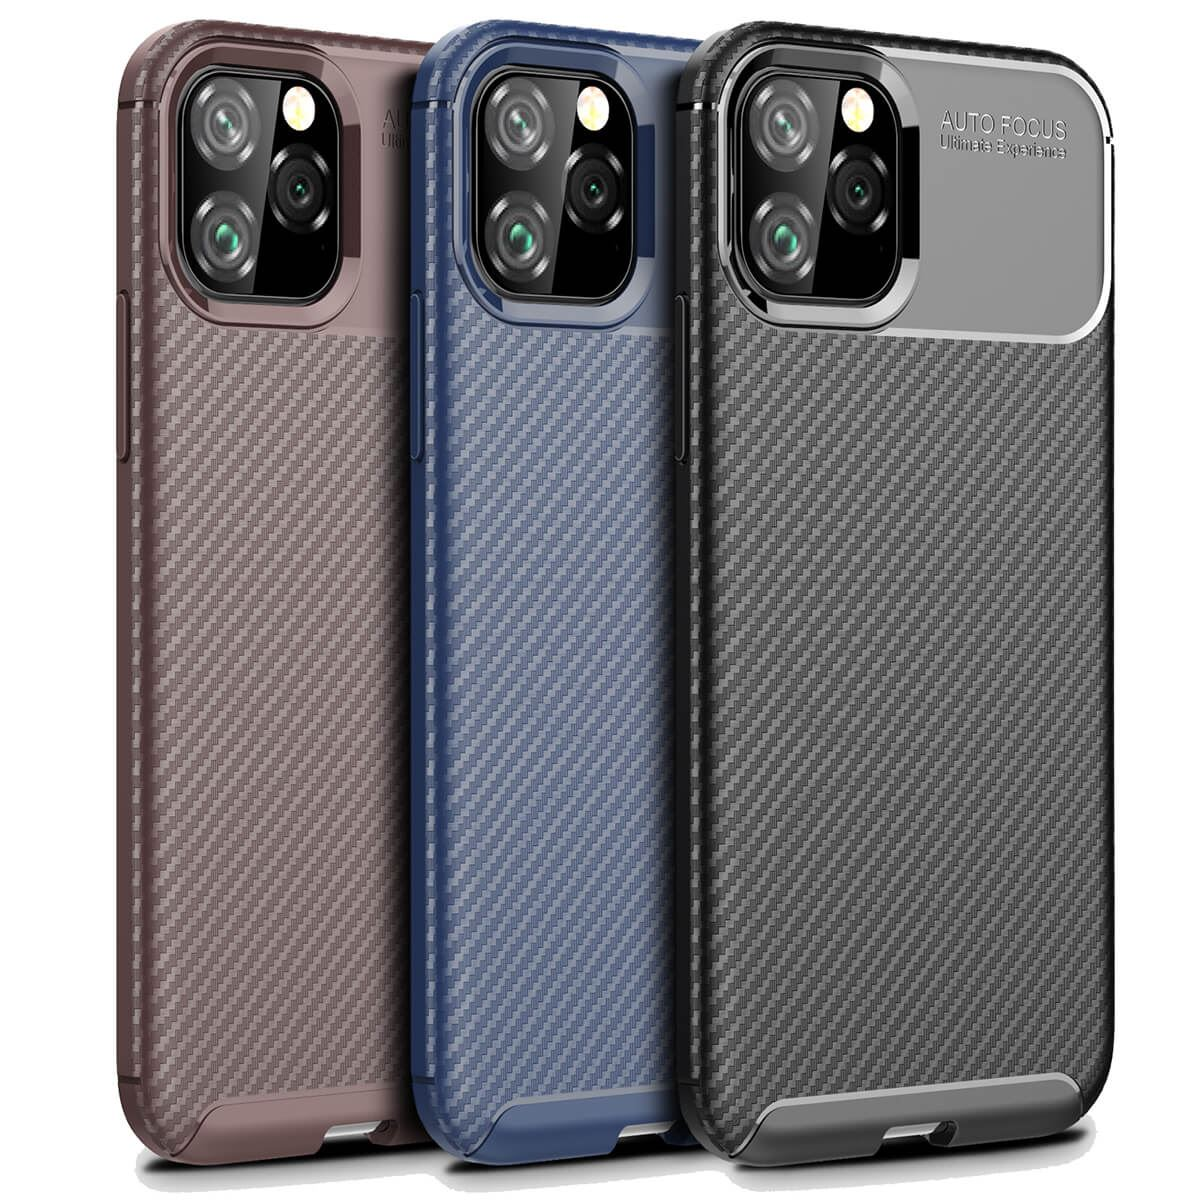 Carbon-Fibre-Soft-Case-For-iPhone-11-X-XR-Max-8-7-6-Plus-Slim-TPU-Silicone-Cover thumbnail 11